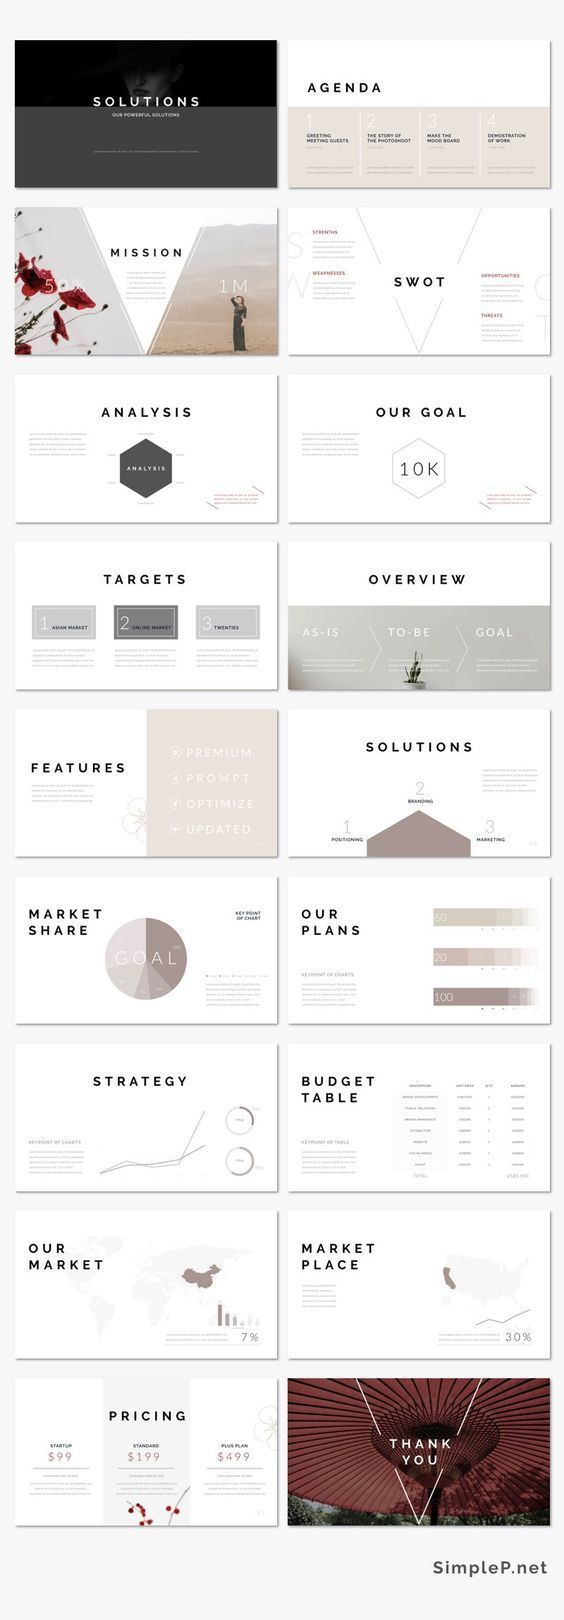 Love this powerpoint presentation template! It is ideal for every creator, designer, student, lecturer, businessman who wants to present their awesome project or creative ideas. #digitalproduct #powerpoint #presentation #creative #ad #designer